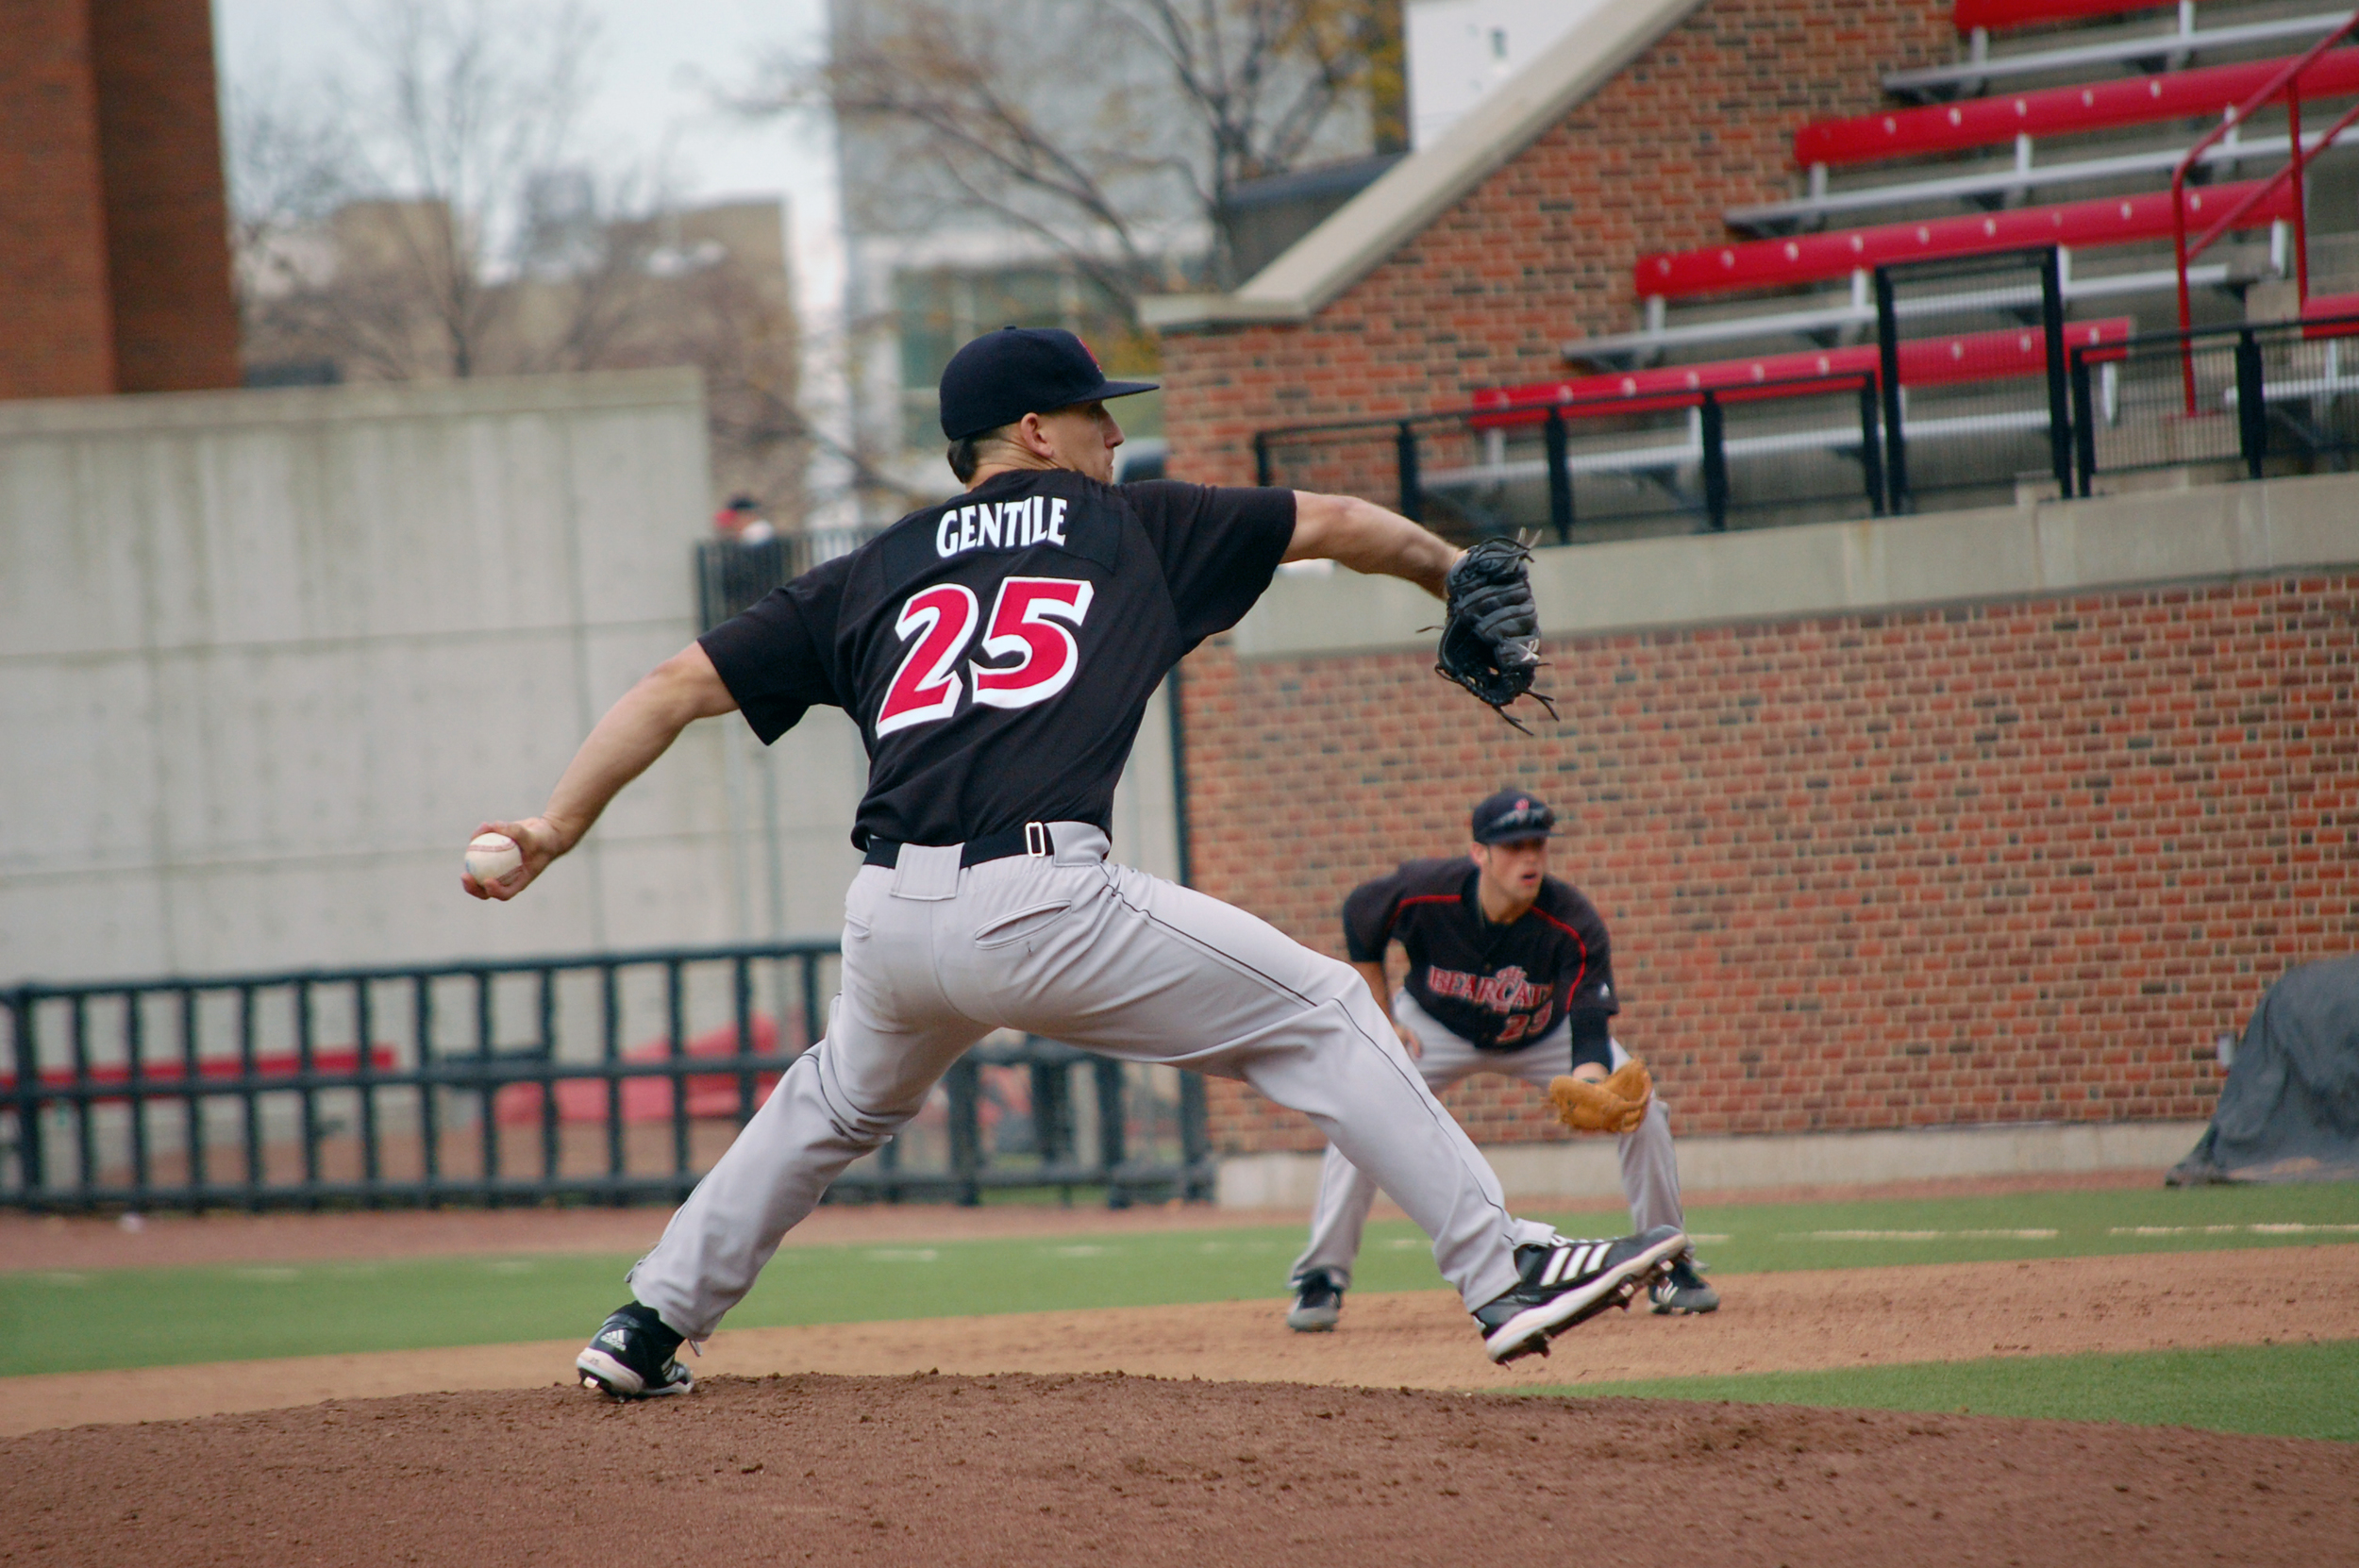 Thomas Gentile '09 University of Cincinnati (photo credit - Cincinnati Athletics)